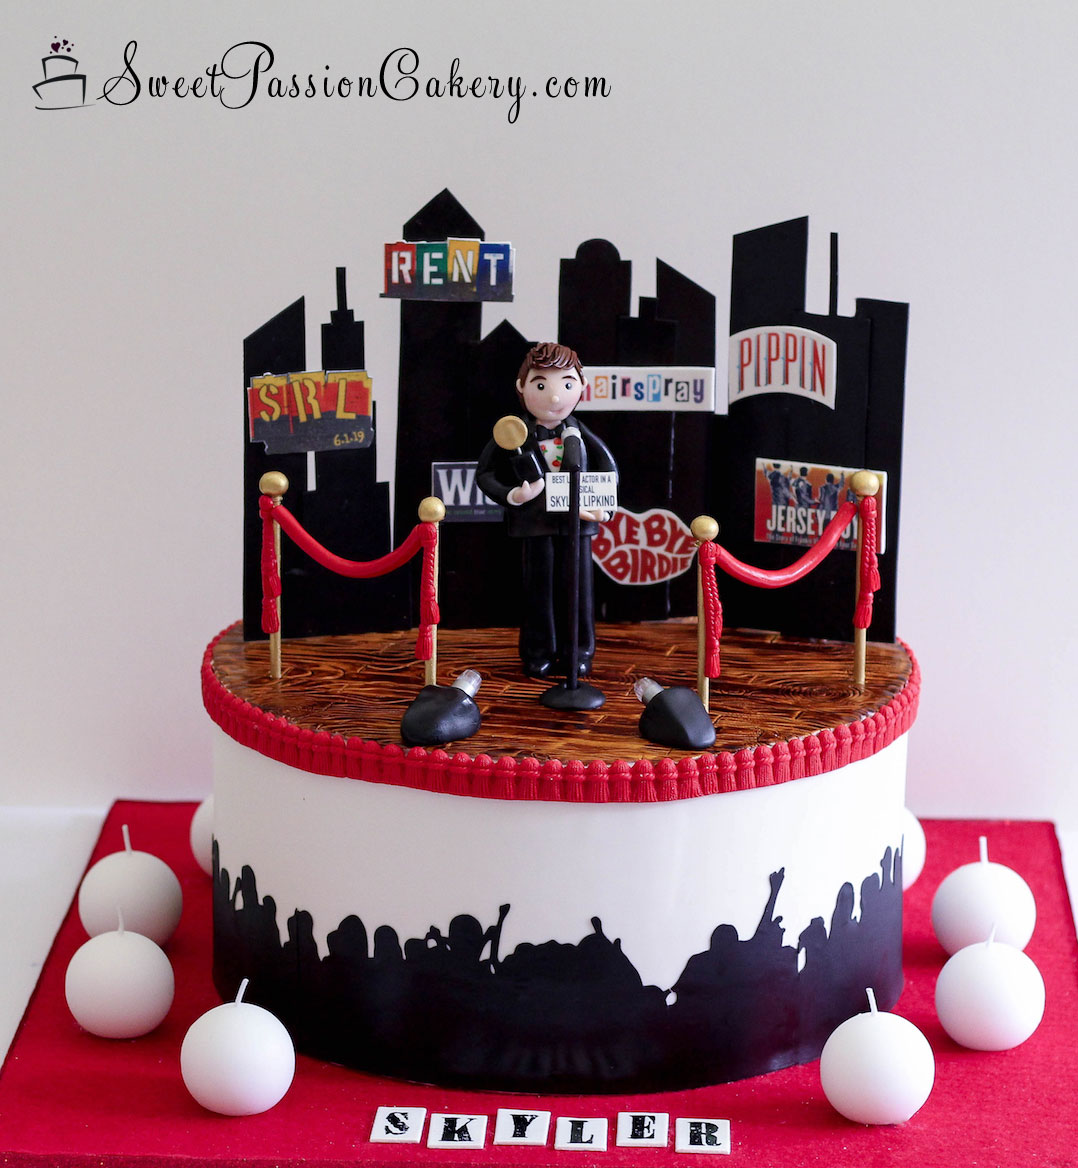 Fabulous Nyc Theater Award Cake Sweet Passion Cakery Personalised Birthday Cards Paralily Jamesorg